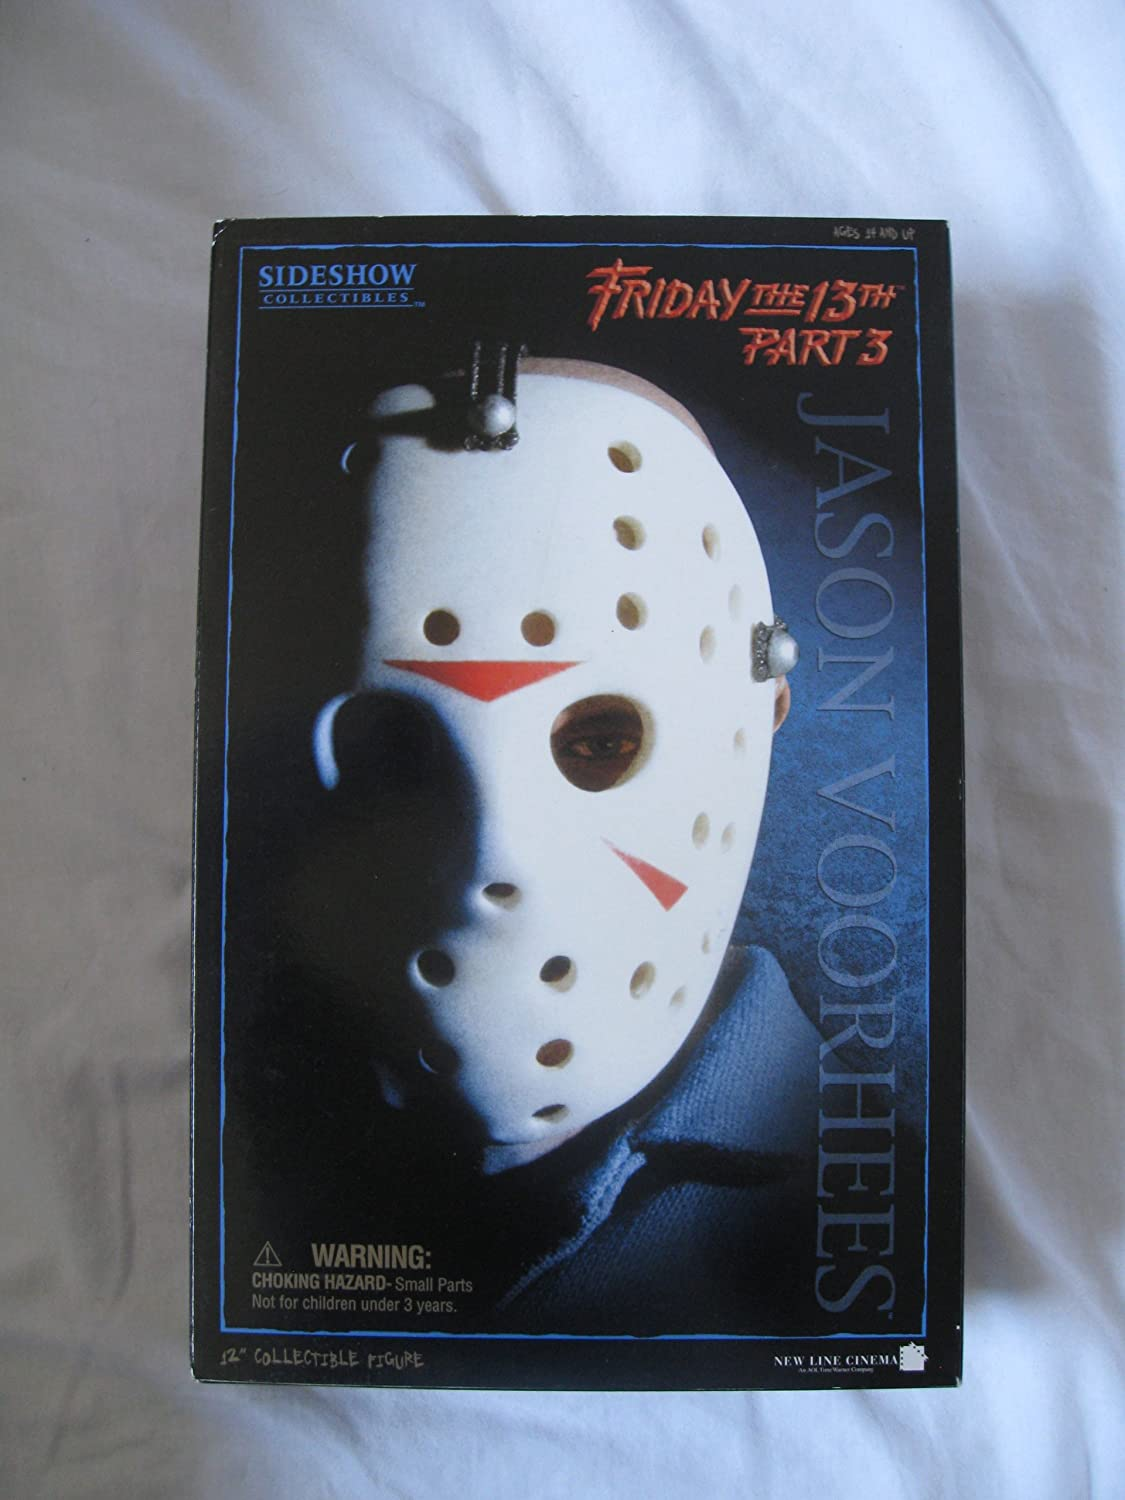 Sideshow Toys 7477202051 - Jason Voorhees Figur 30,5 cm (12 Zoll) (Sideshow Collectibles)